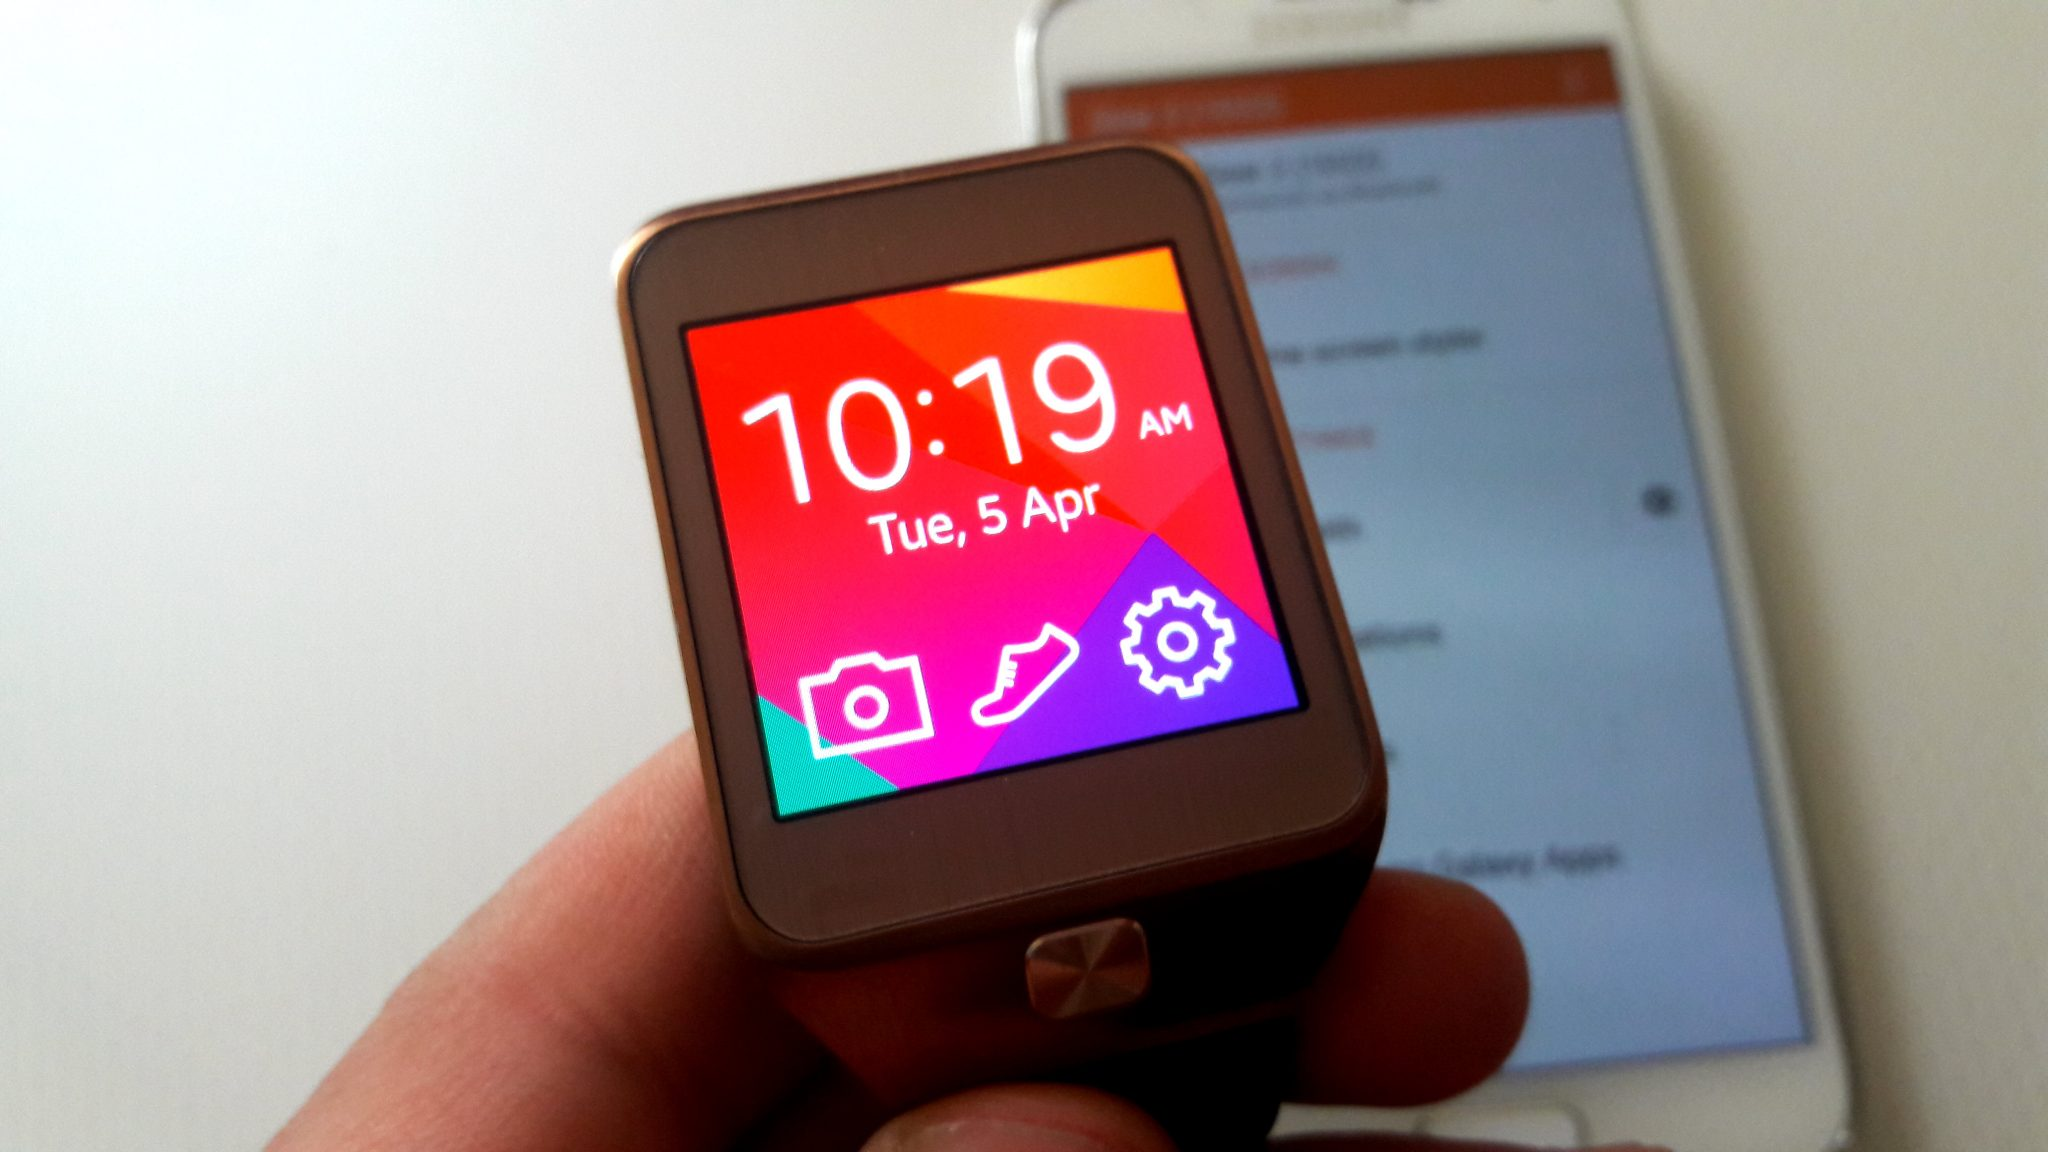 Samsung Gear 2 Connected